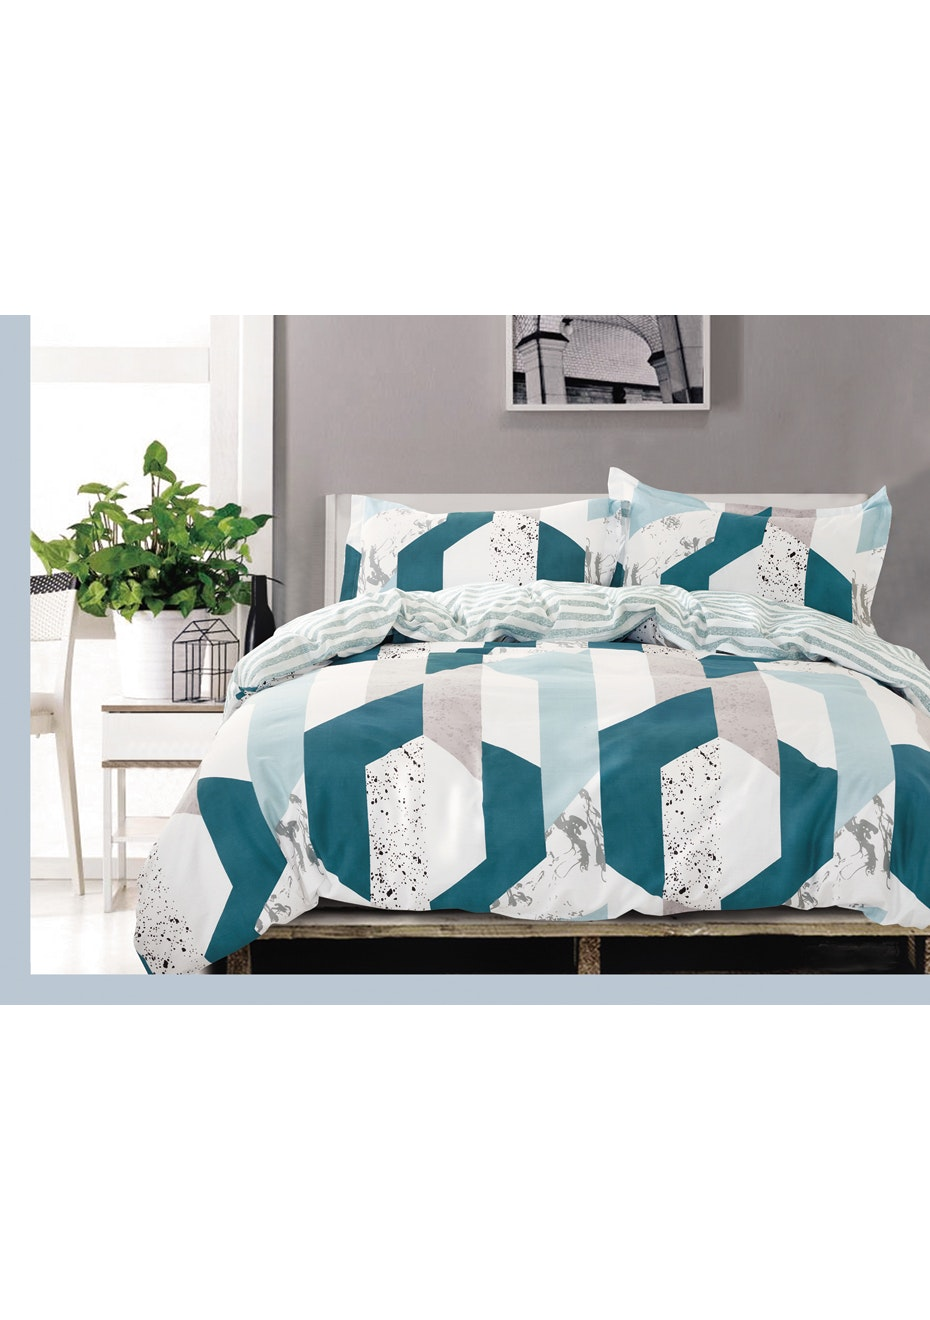 Marble Cove Quilt Cover Set - Reversible Design - 100% Cotton - King Bed